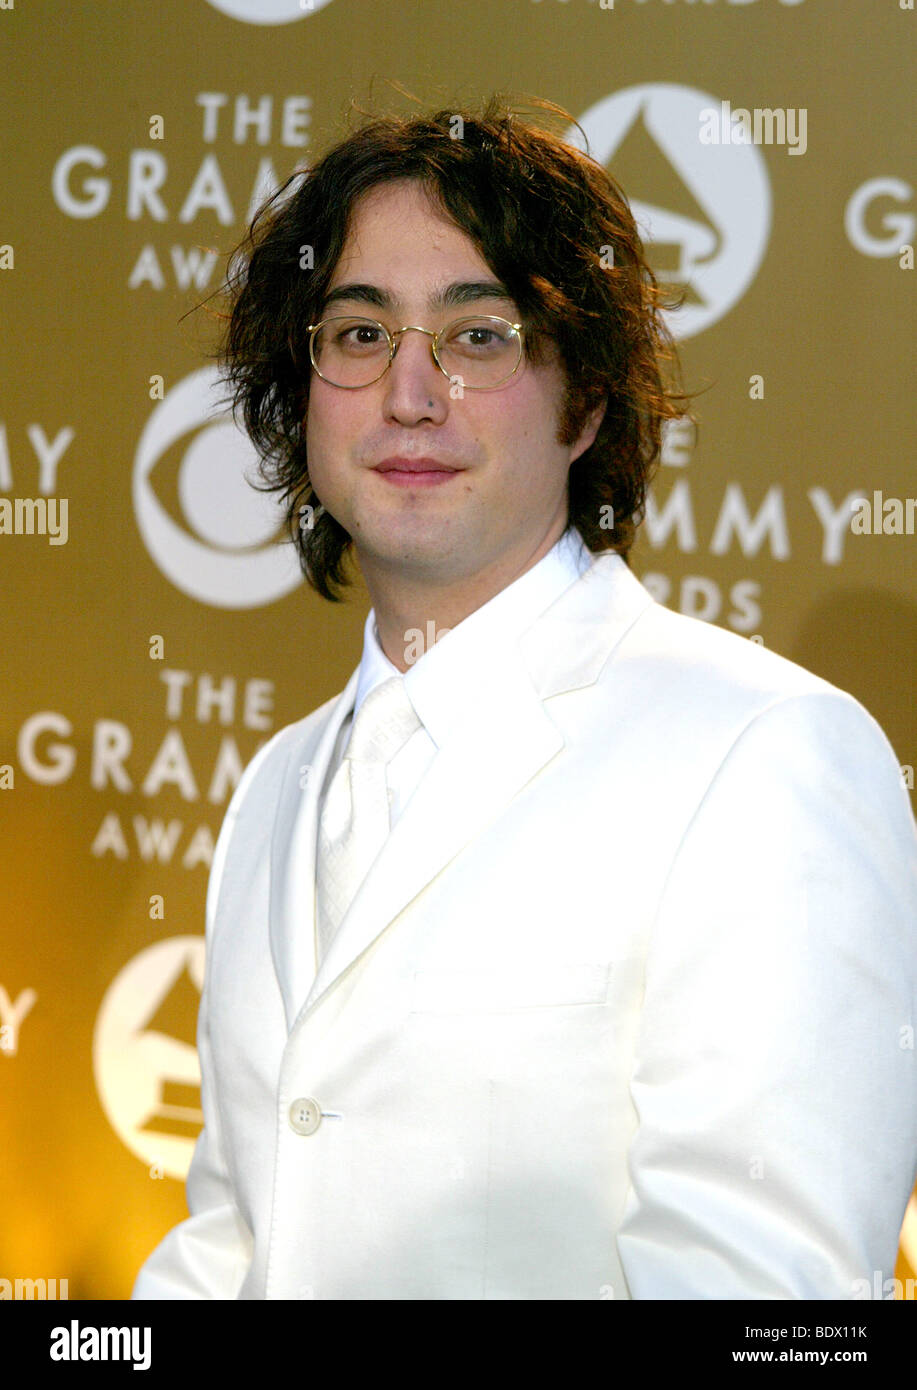 Sean Lennon Son Yoko Ono Stock Photos